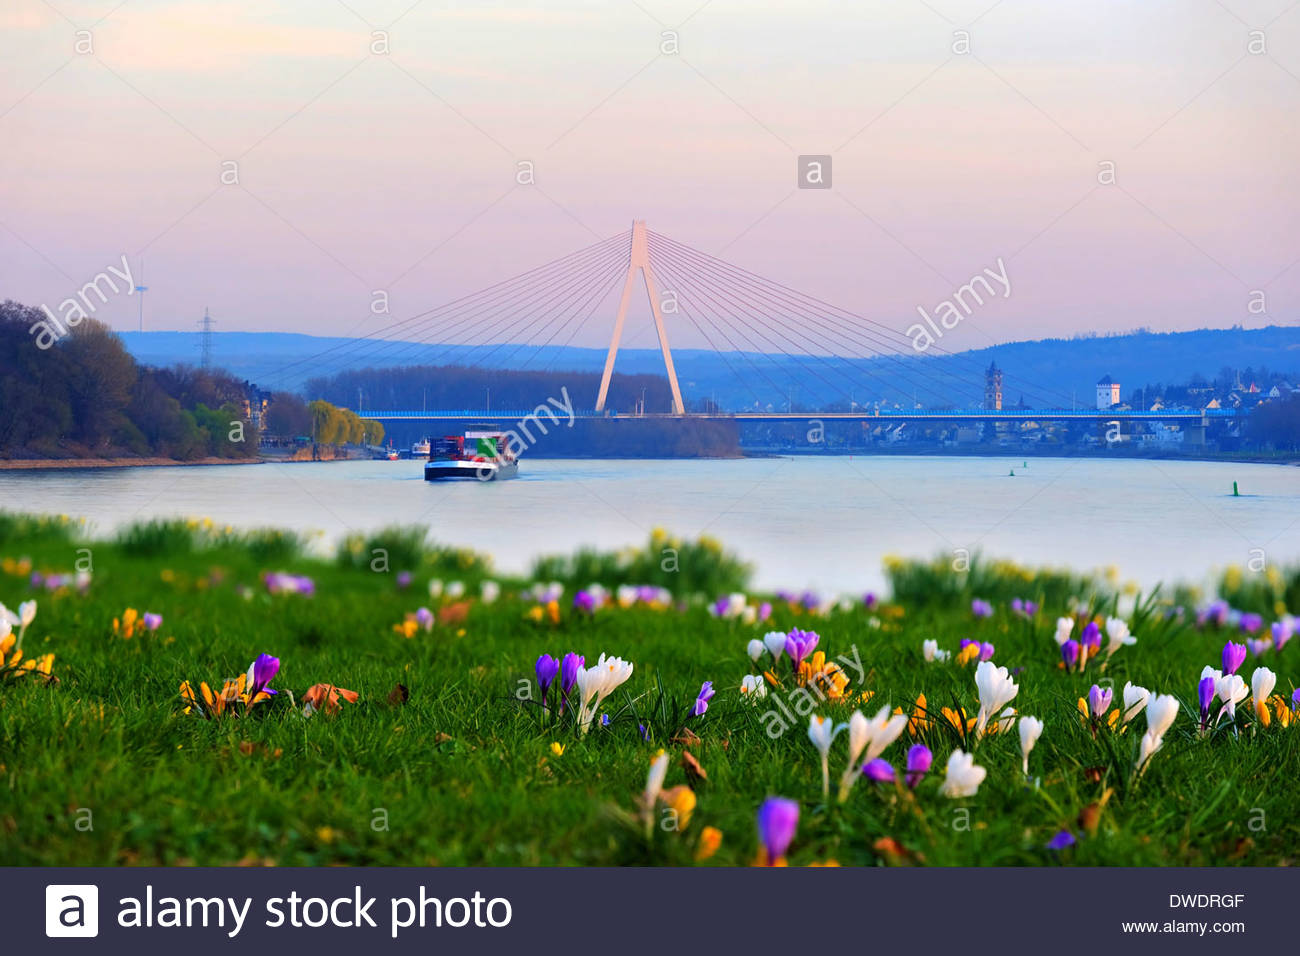 Germany, Rhineland-Palatinate, Neuwied, Raiffeisen bridge, Weissenthurm, Rhine river, meadow with crocuses in spring - Stock Image